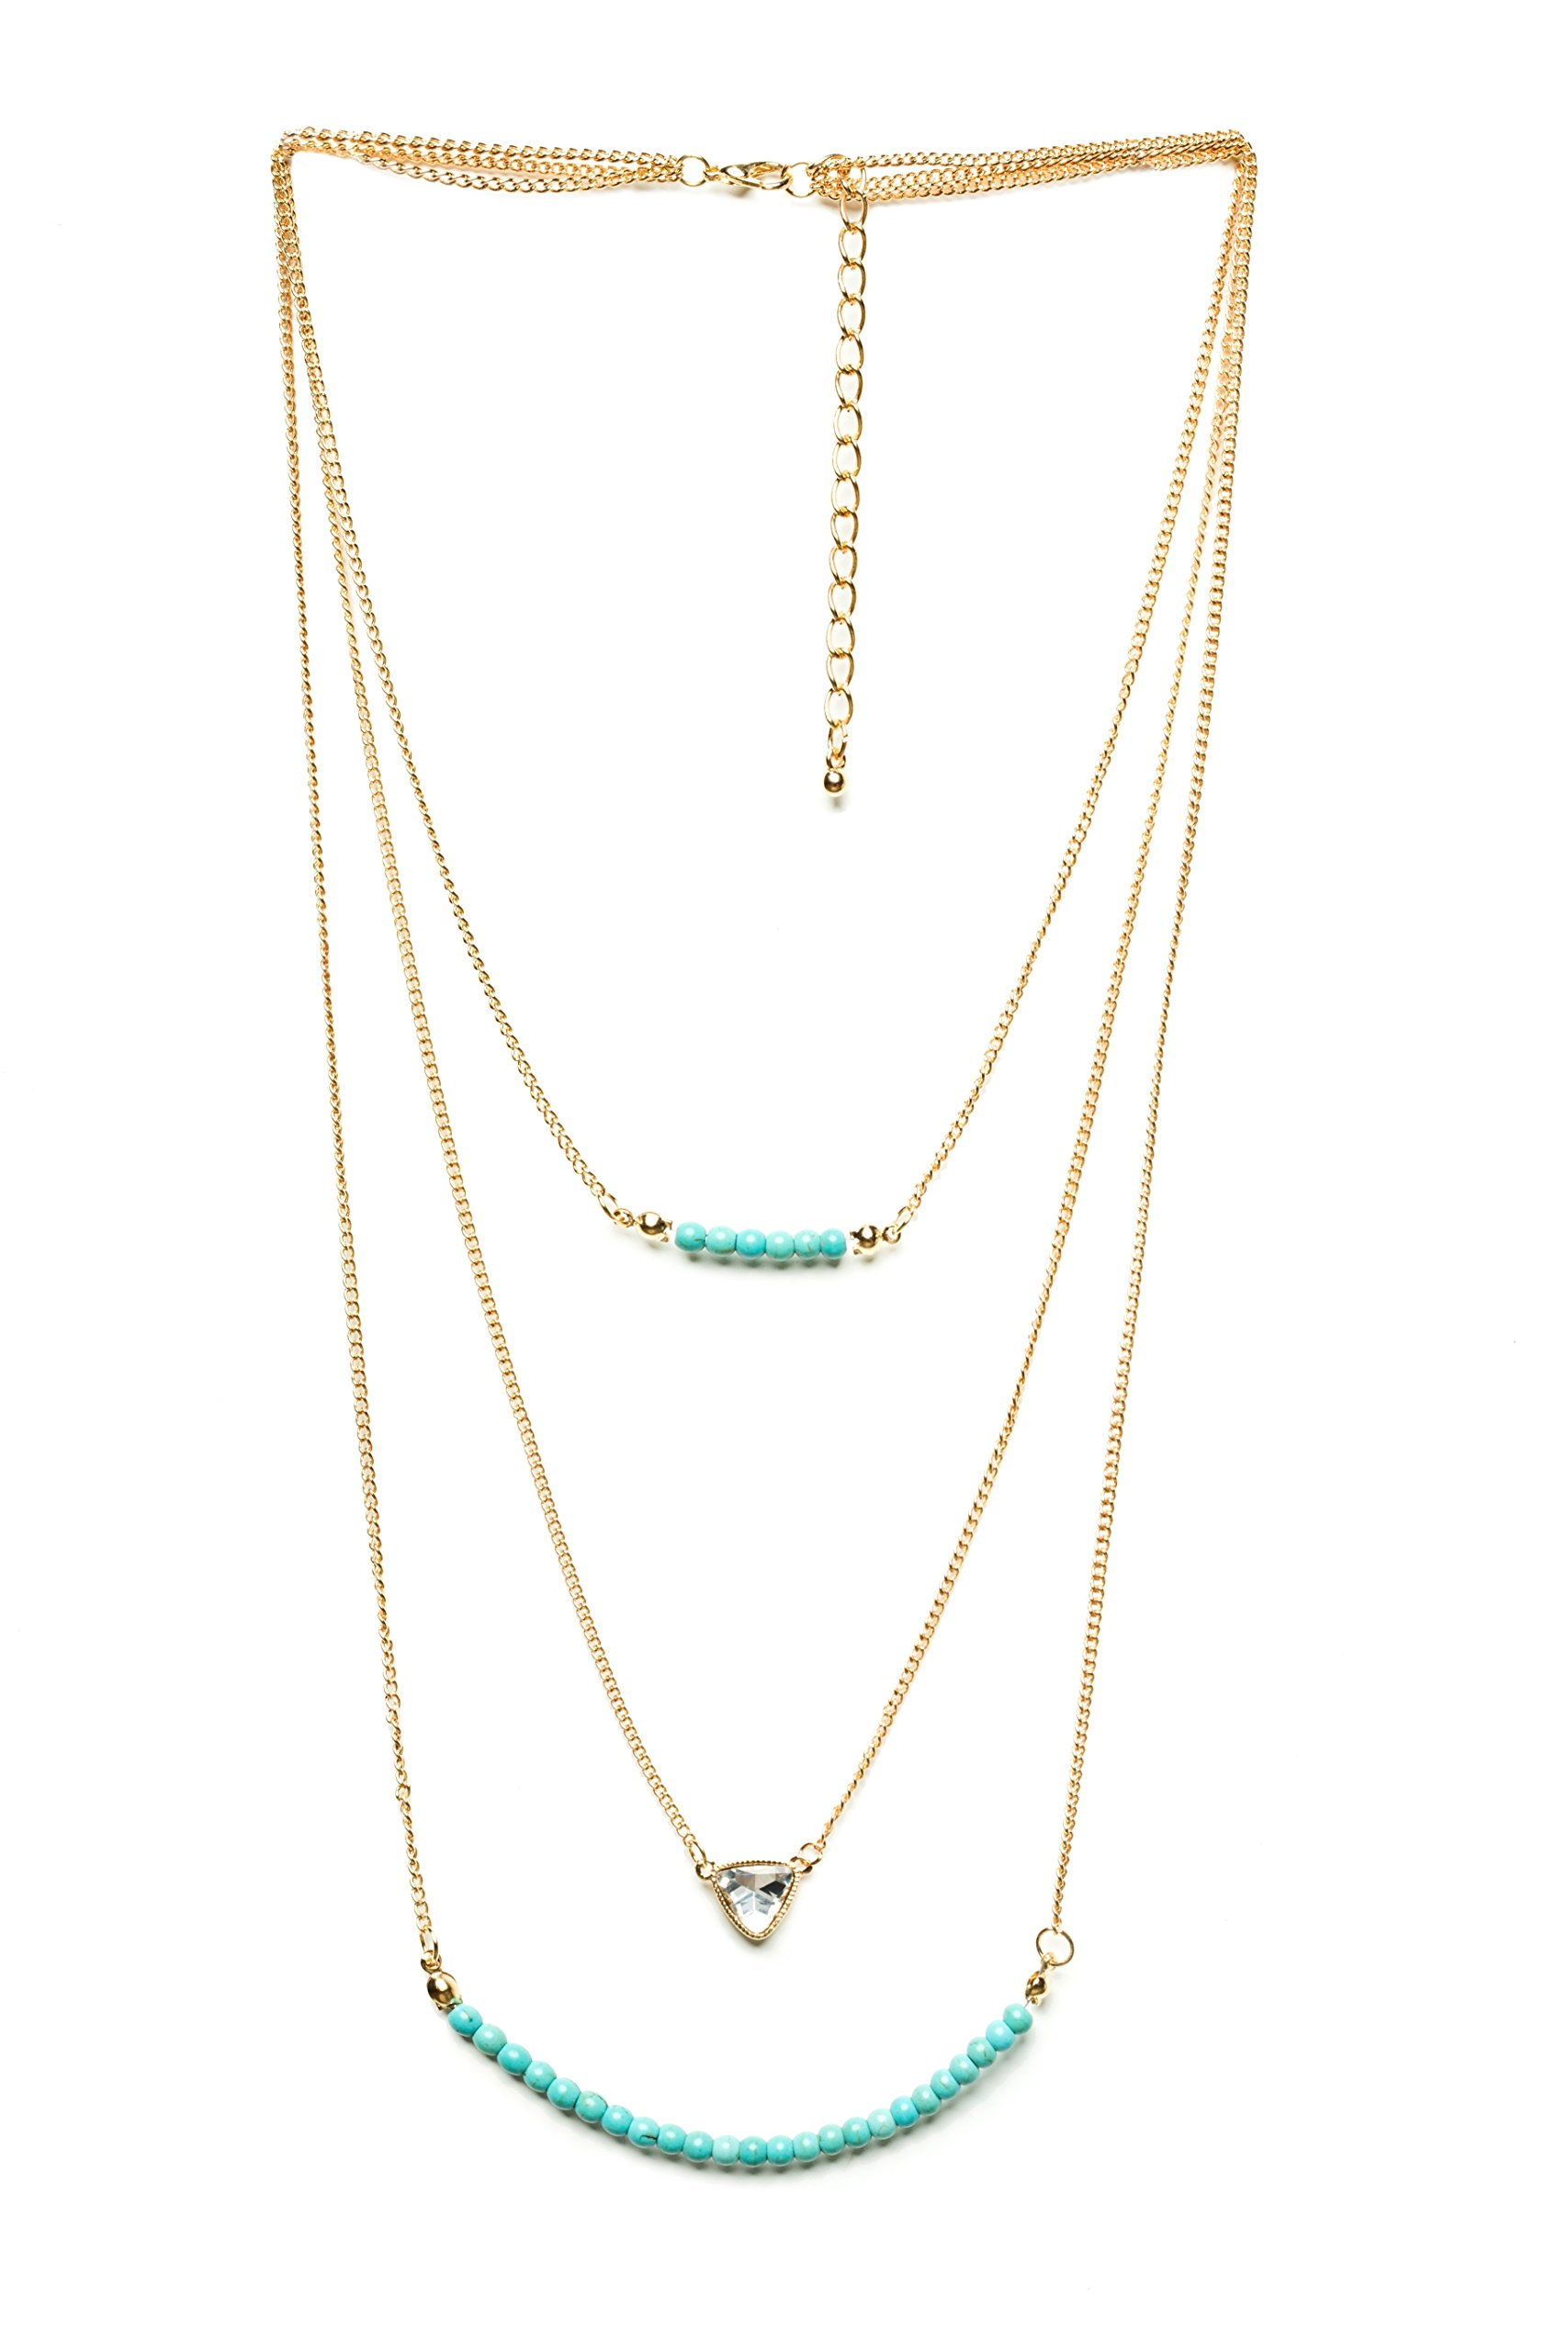 Land of Love Seed Bead and Crystal Gold Chain Summer Necklace With Turquoise Beads